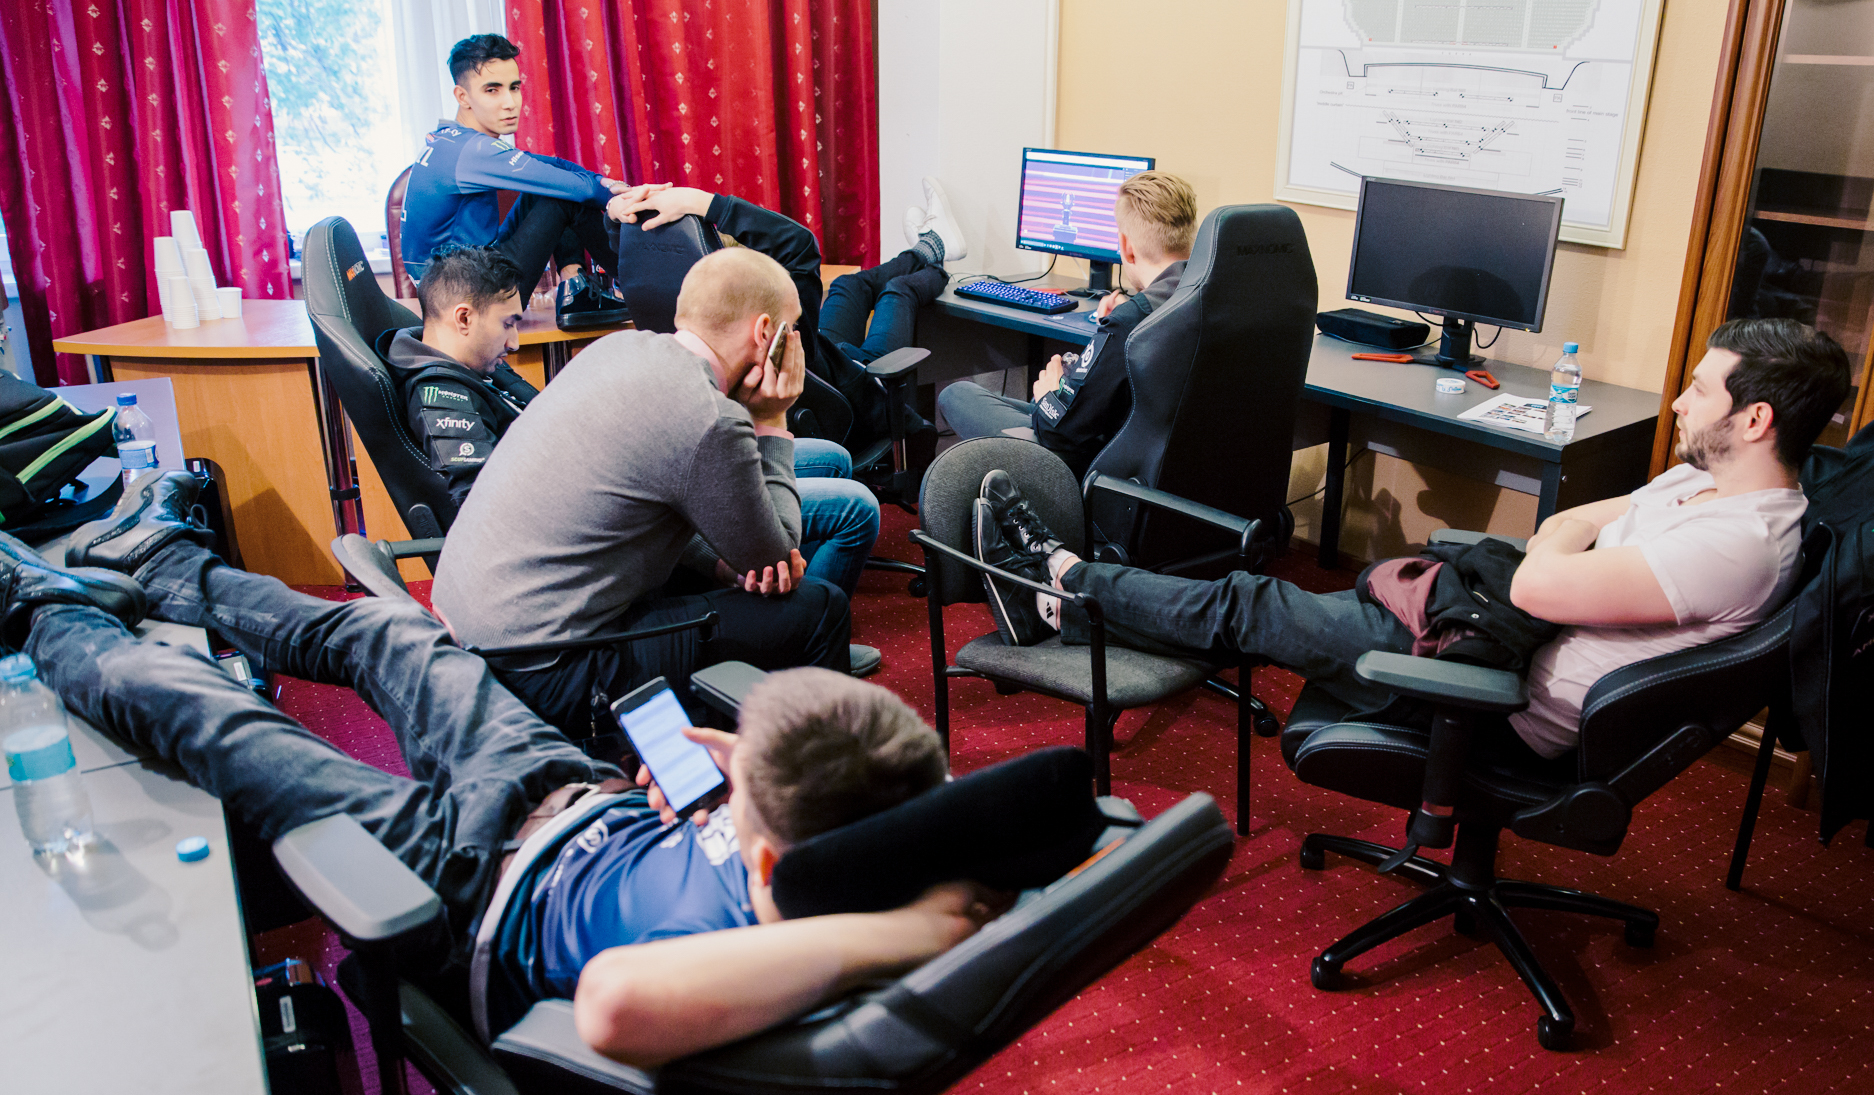 Evil Geniuses getting some downtime in between matches at Kiev Major 2017